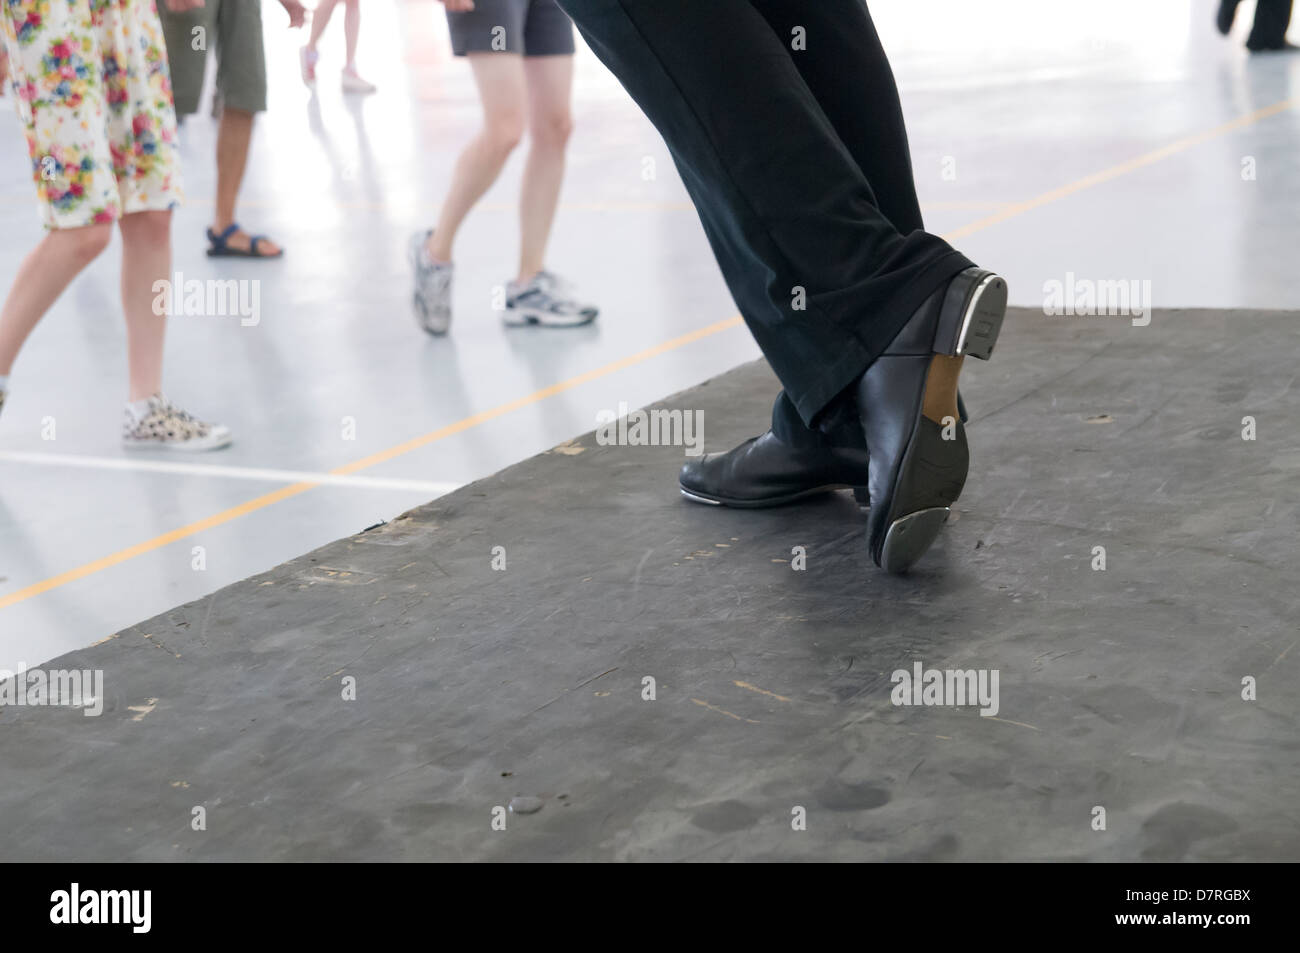 Tap dancer instructor Close up of the feet and shoes - Stock Image